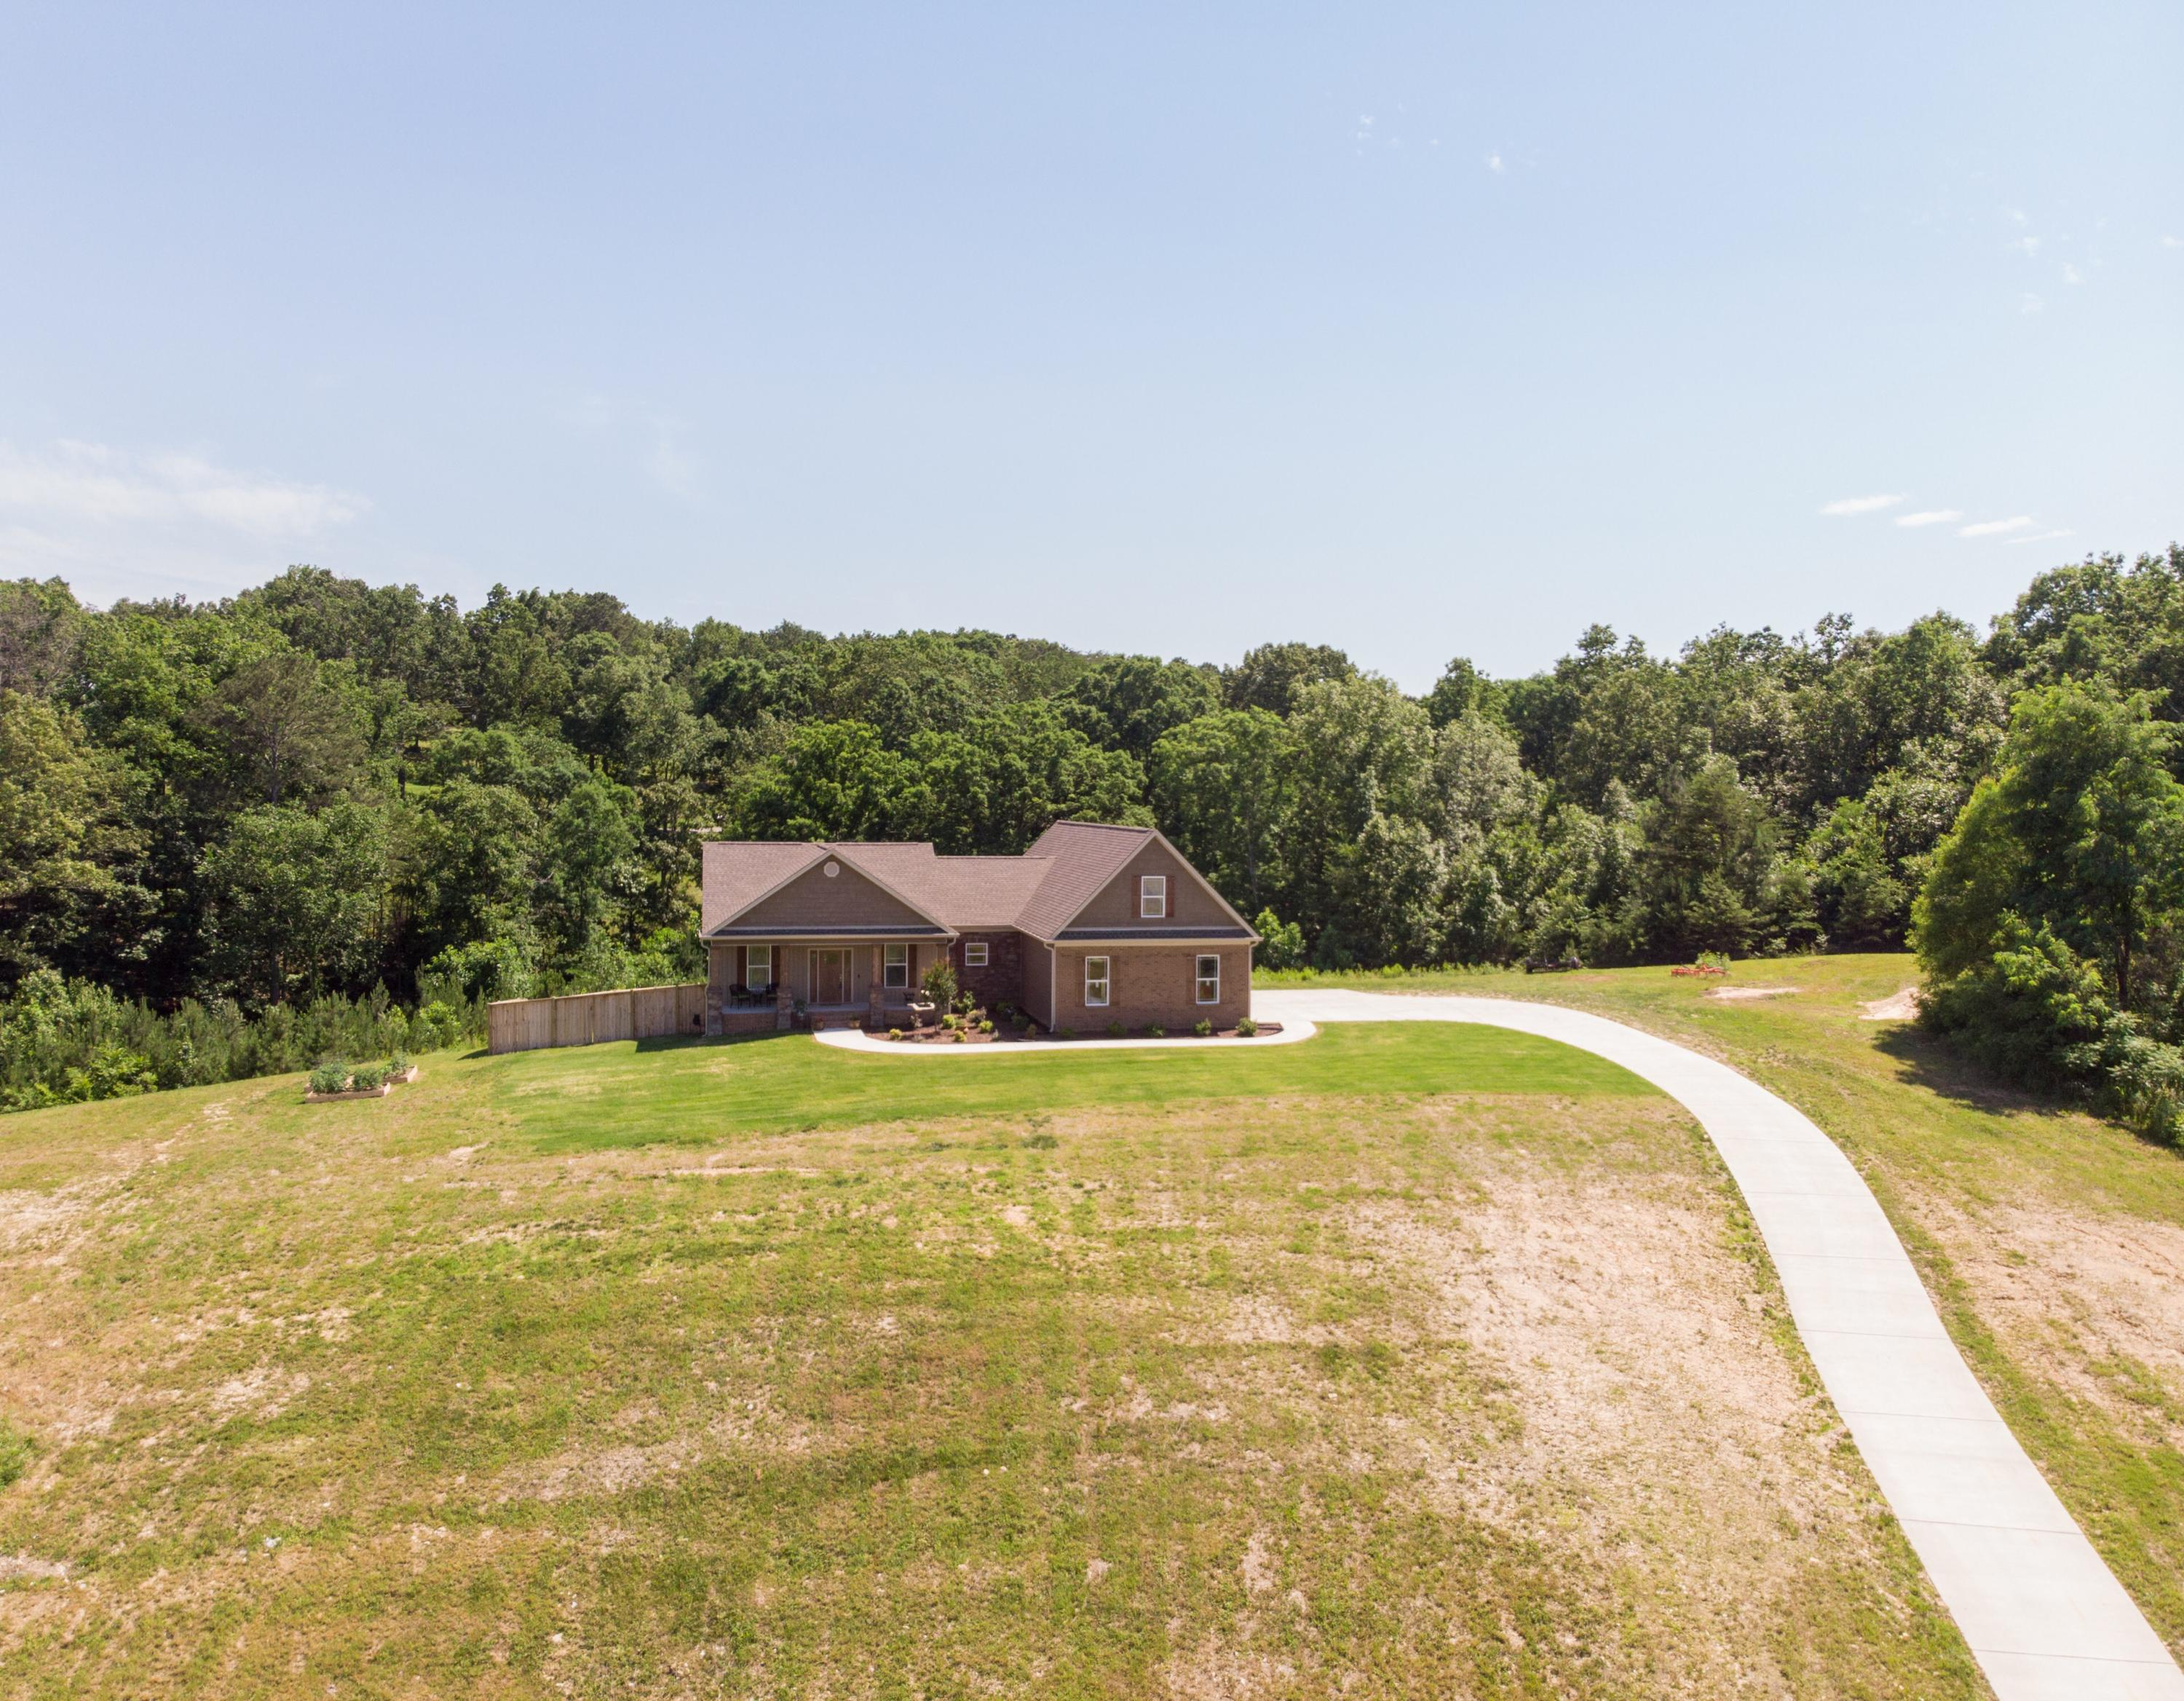 125 Nw Reserve Dr, Georgetown, TN 37336